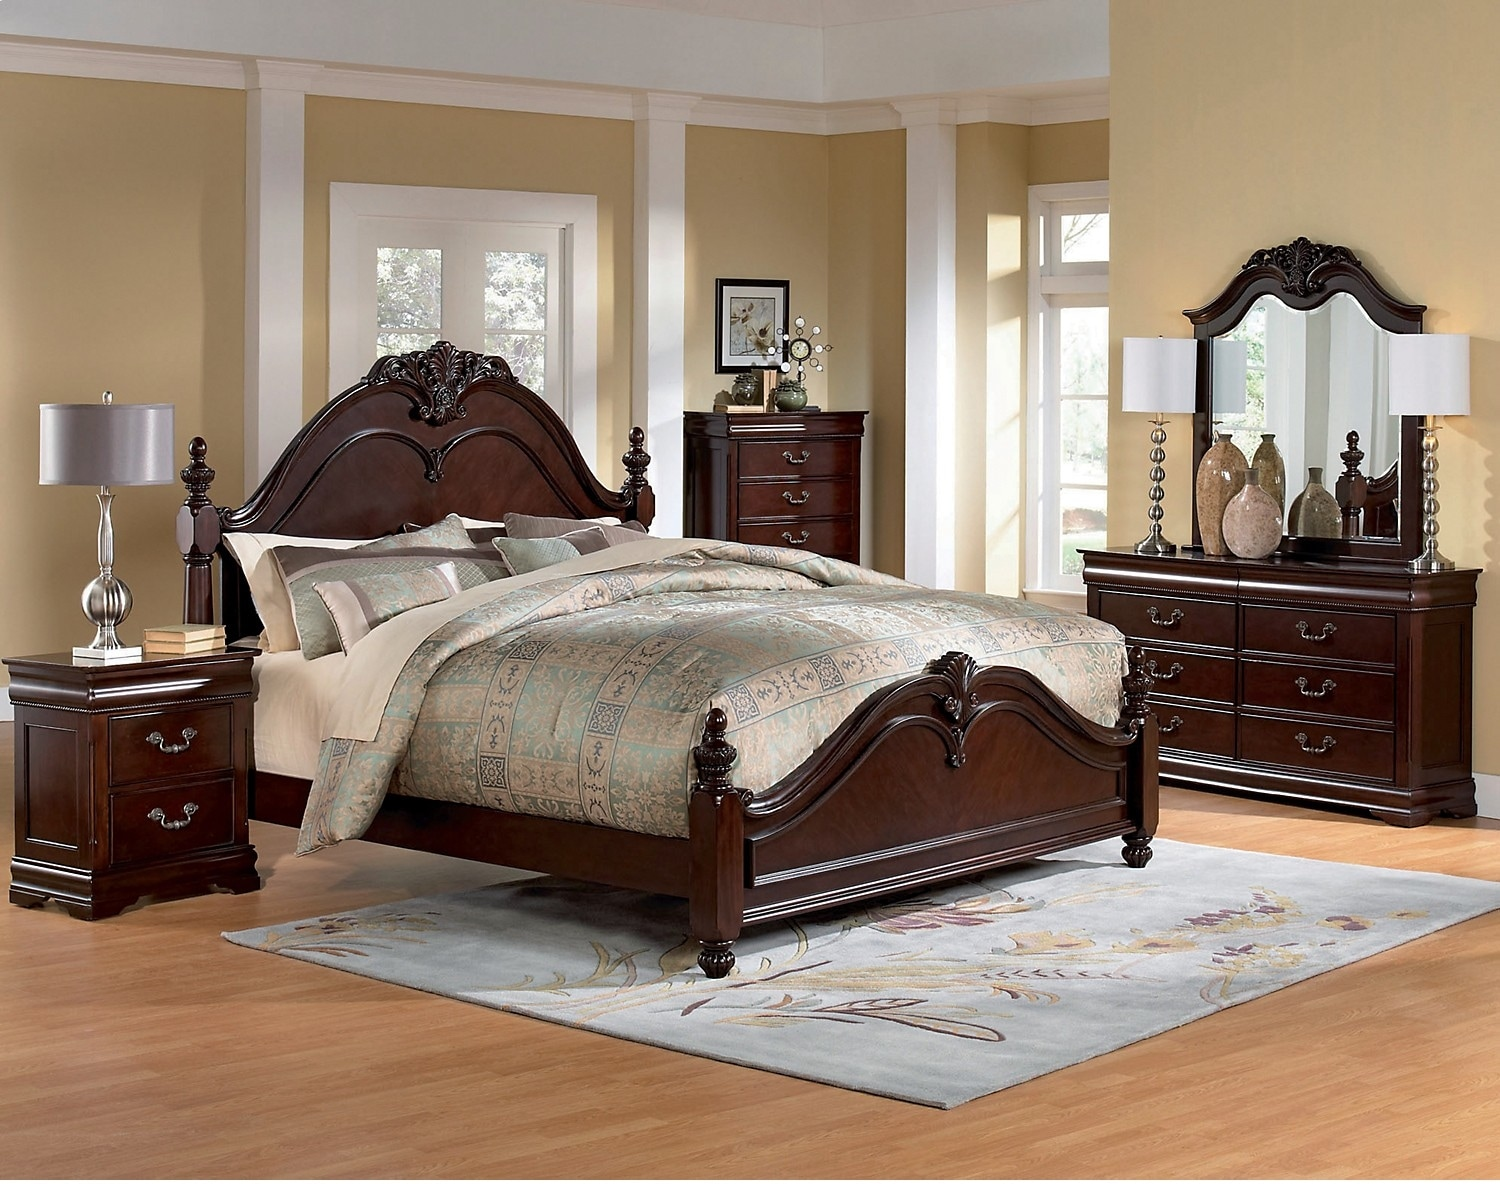 Westchester 6 piece queen bedroom set the brick - Queen bedroom sets ...